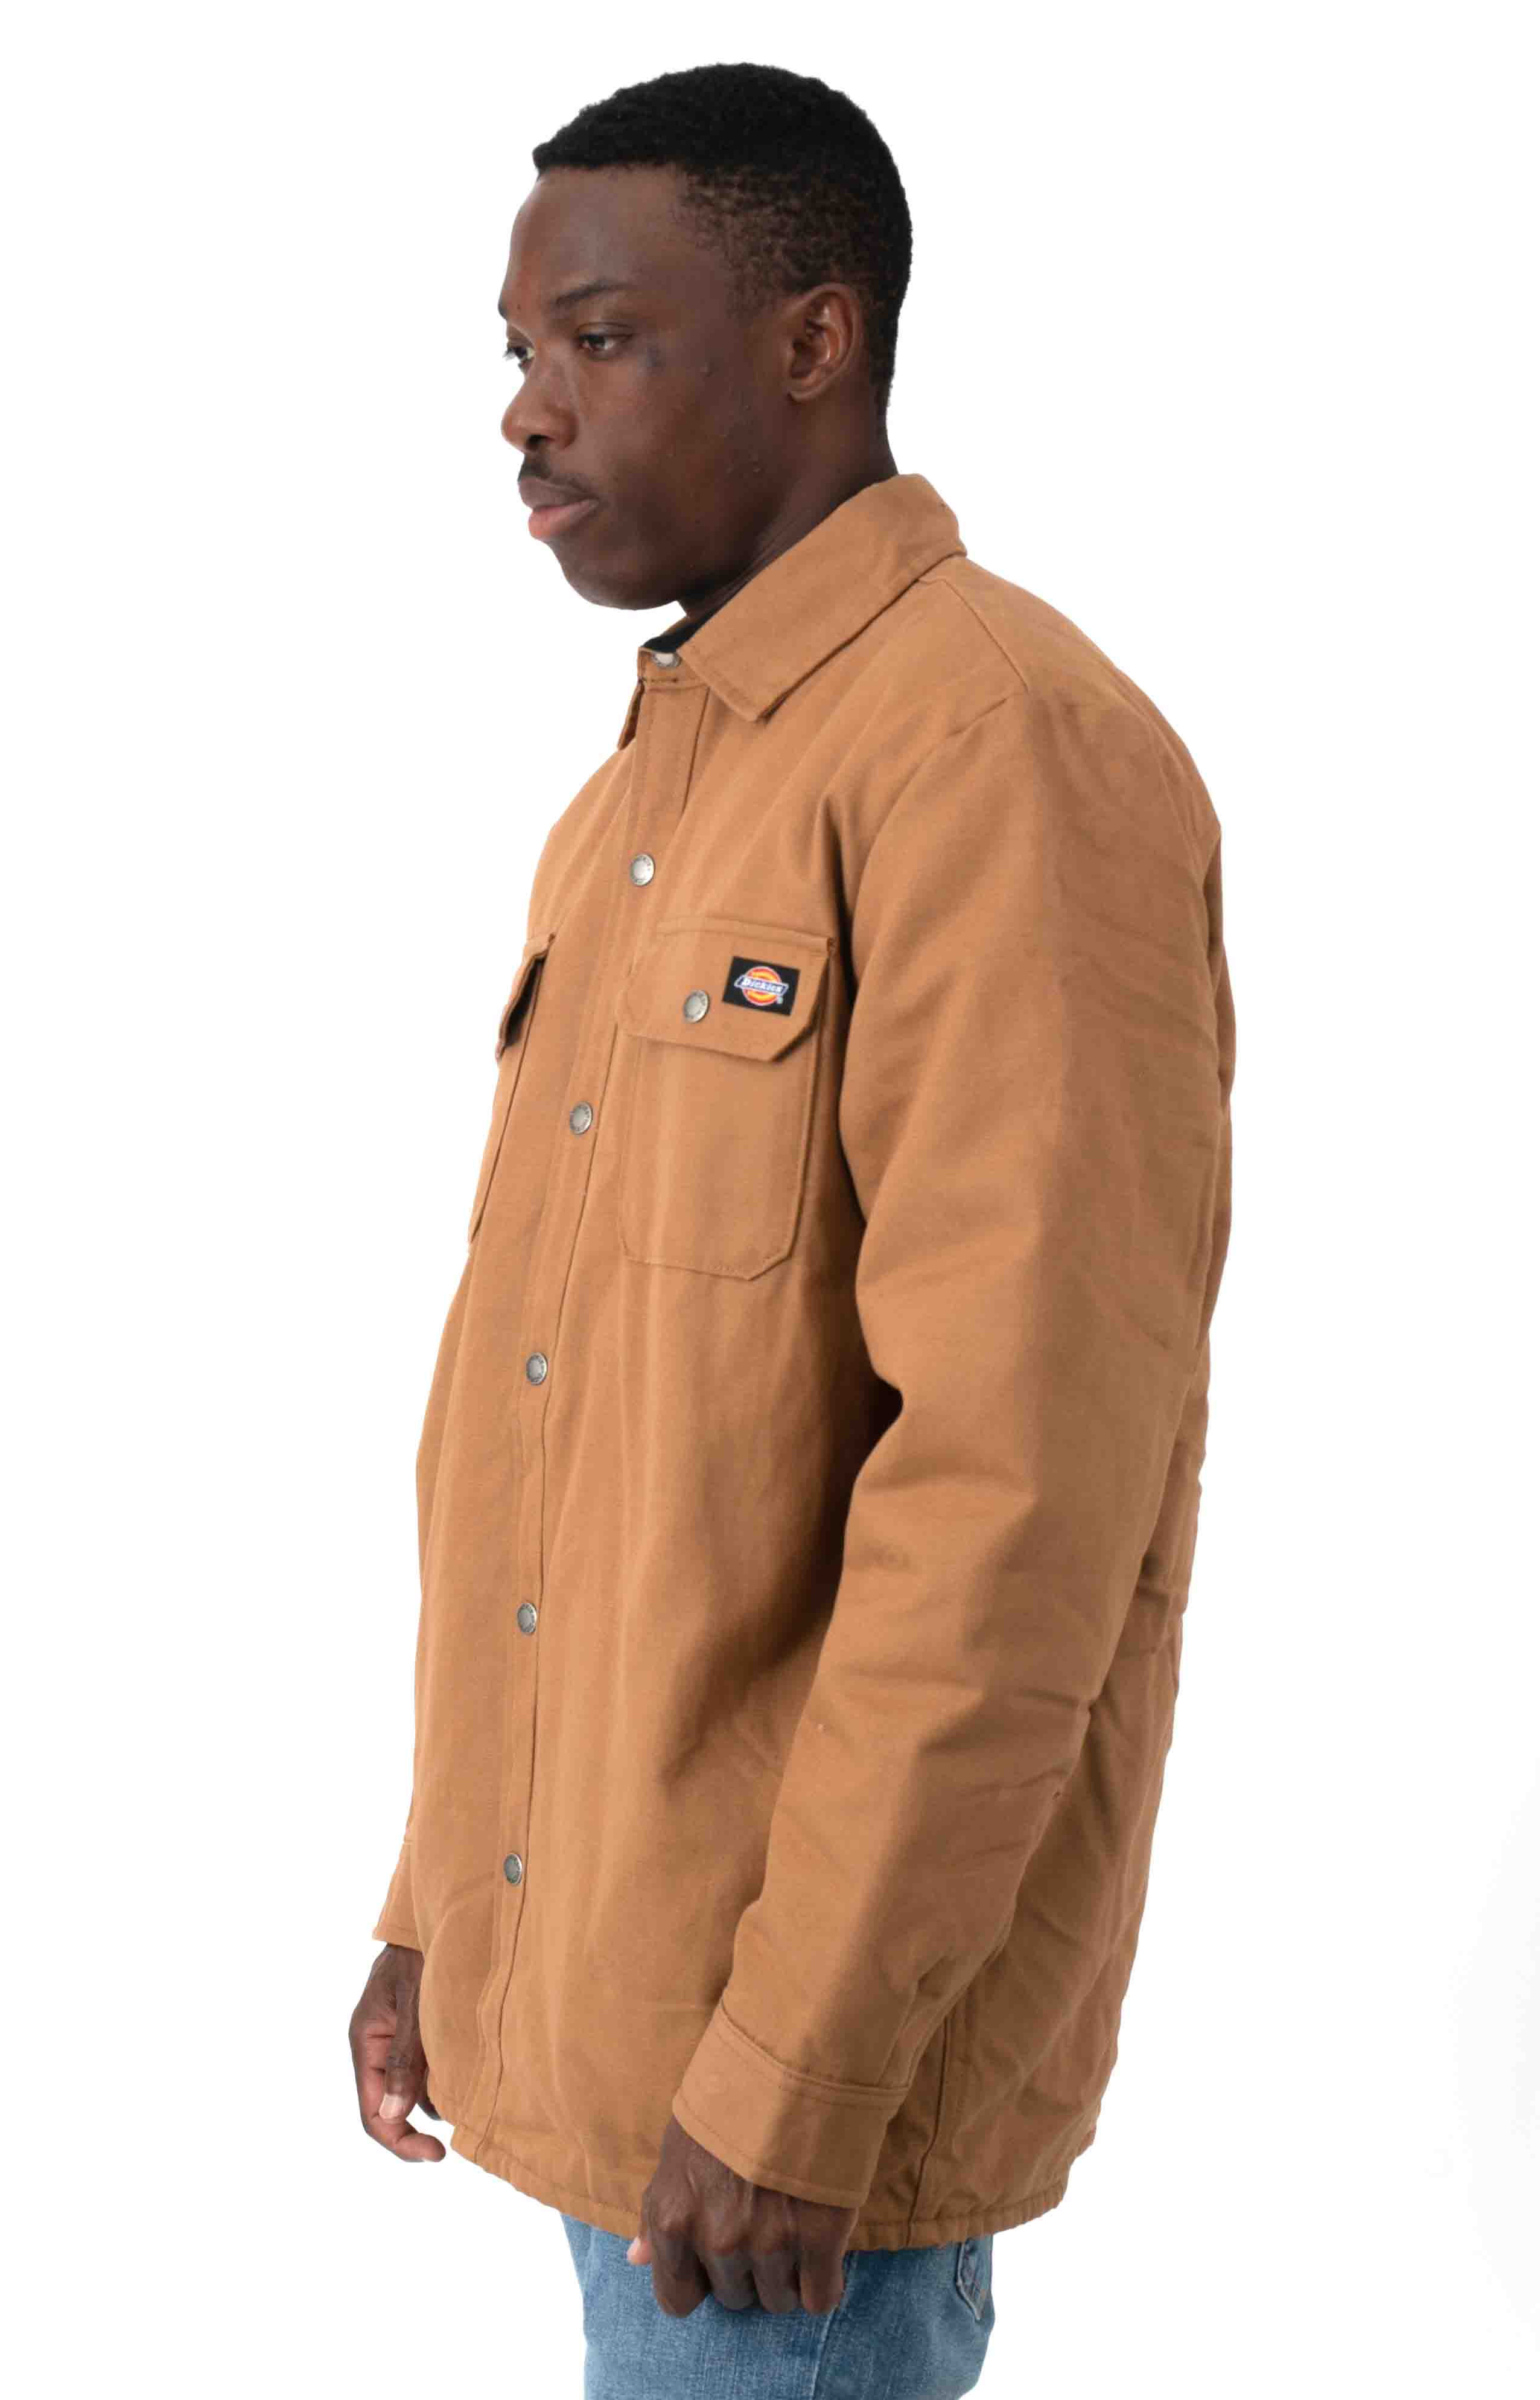 (TJ215BD) Flannel Lined Duck Shirt Jacket with Hydroshield - Brown Duck 2